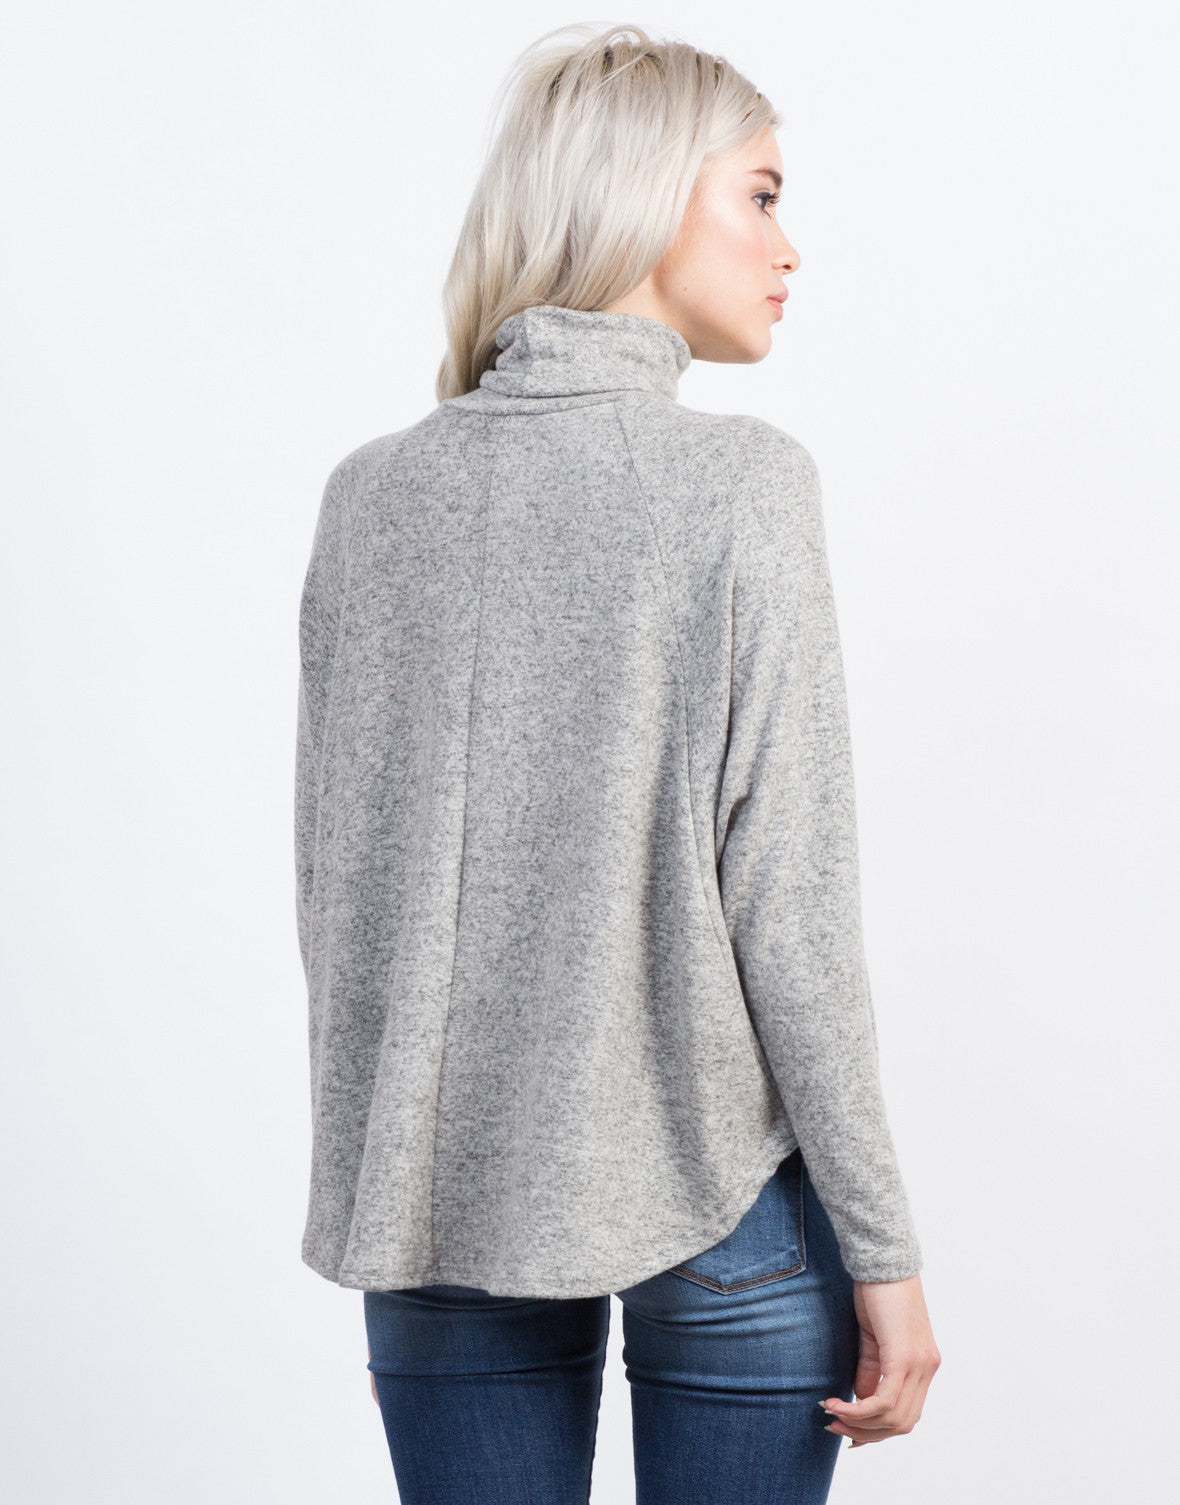 Back View of Flowy Turtleneck Top